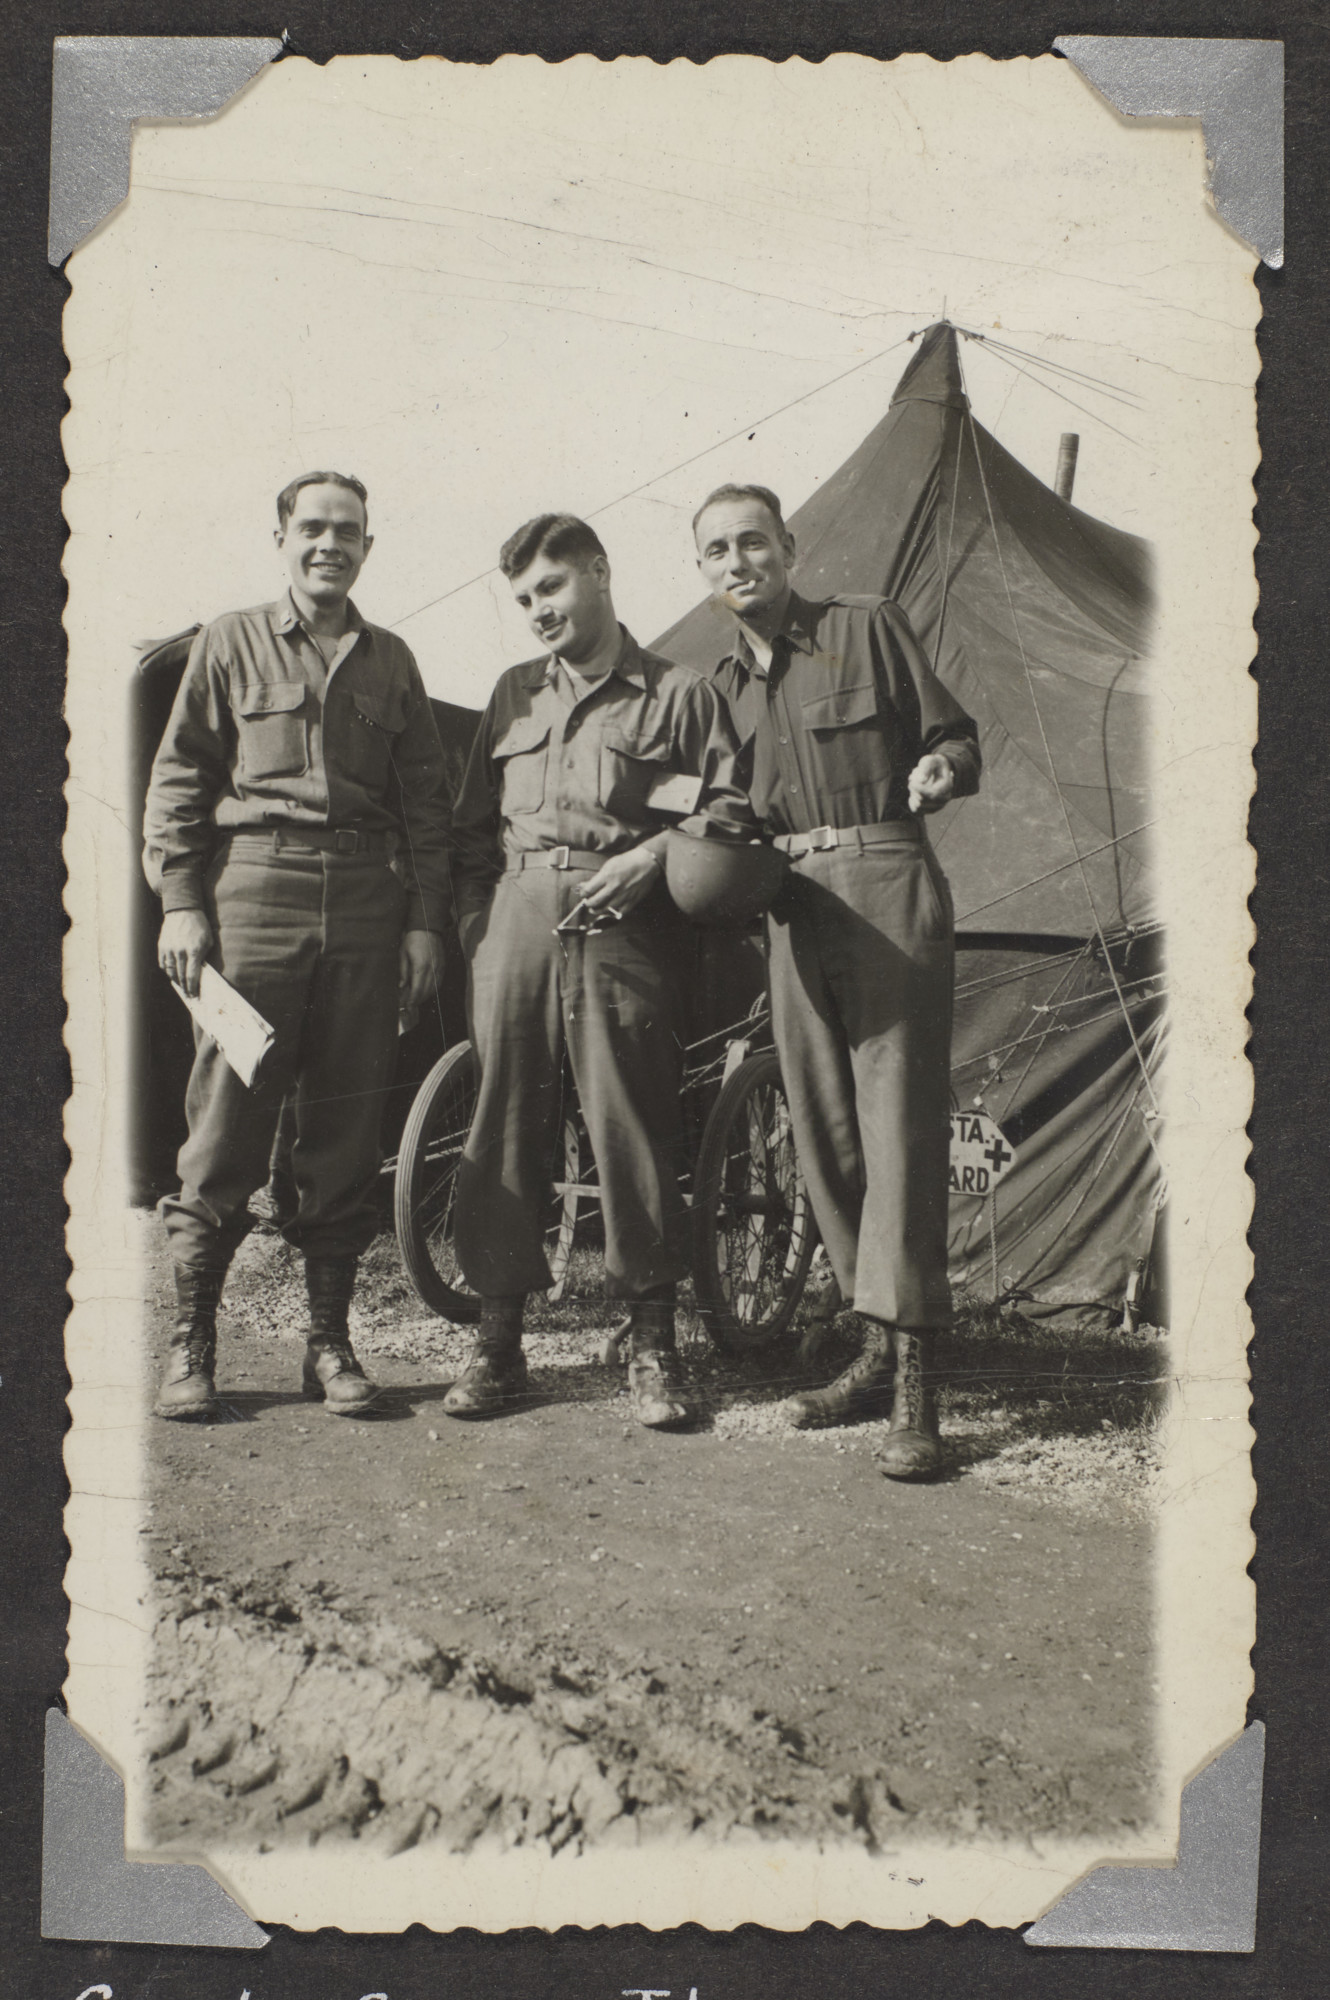 Three American servicemen stand outside a tent.   Pictured are Capt. George Thompson, Louis Bernard Katz, and Capt. Roger Steinhardt.